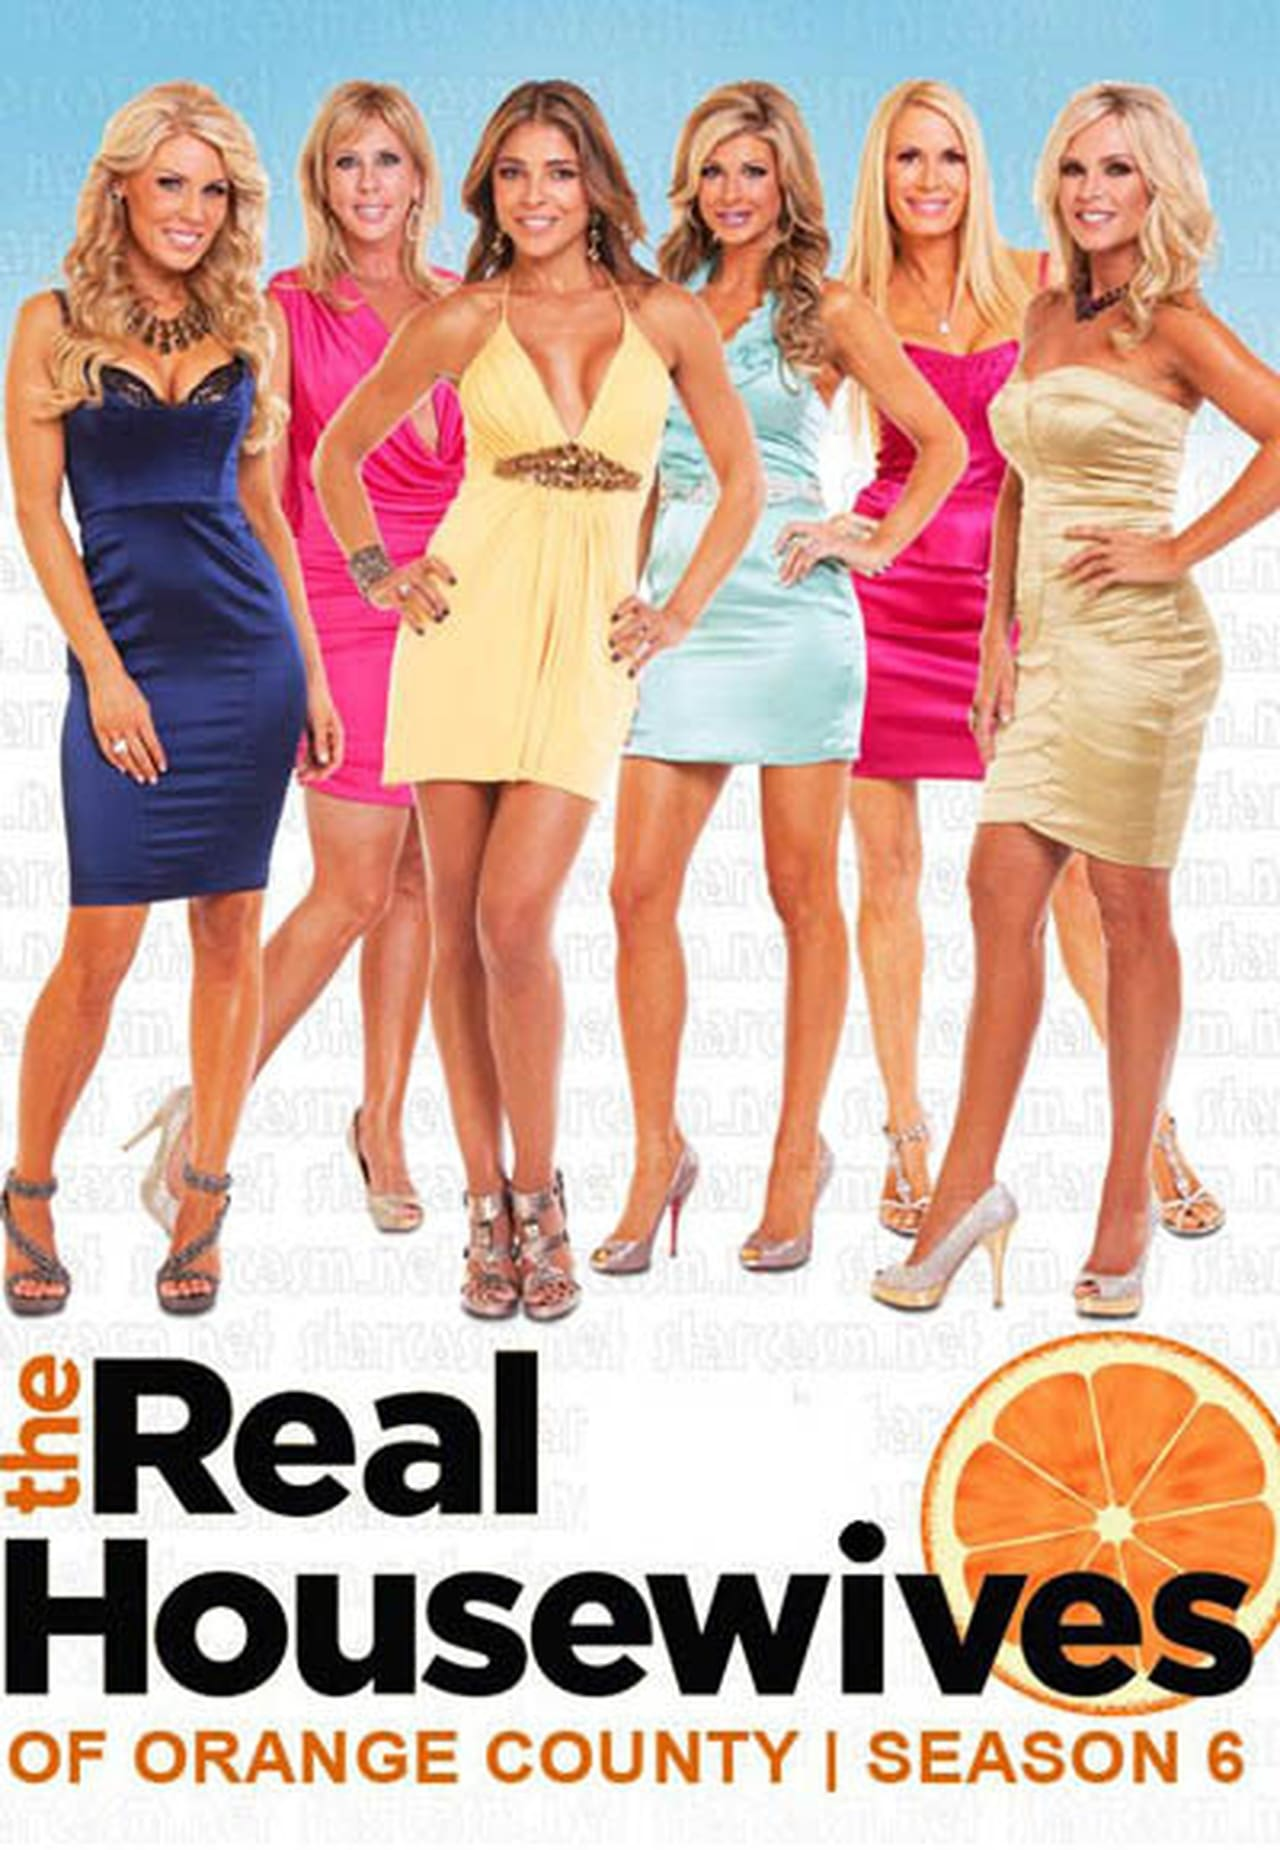 The Real Housewives Of Orange County Season 6 (2011) putlockers cafe